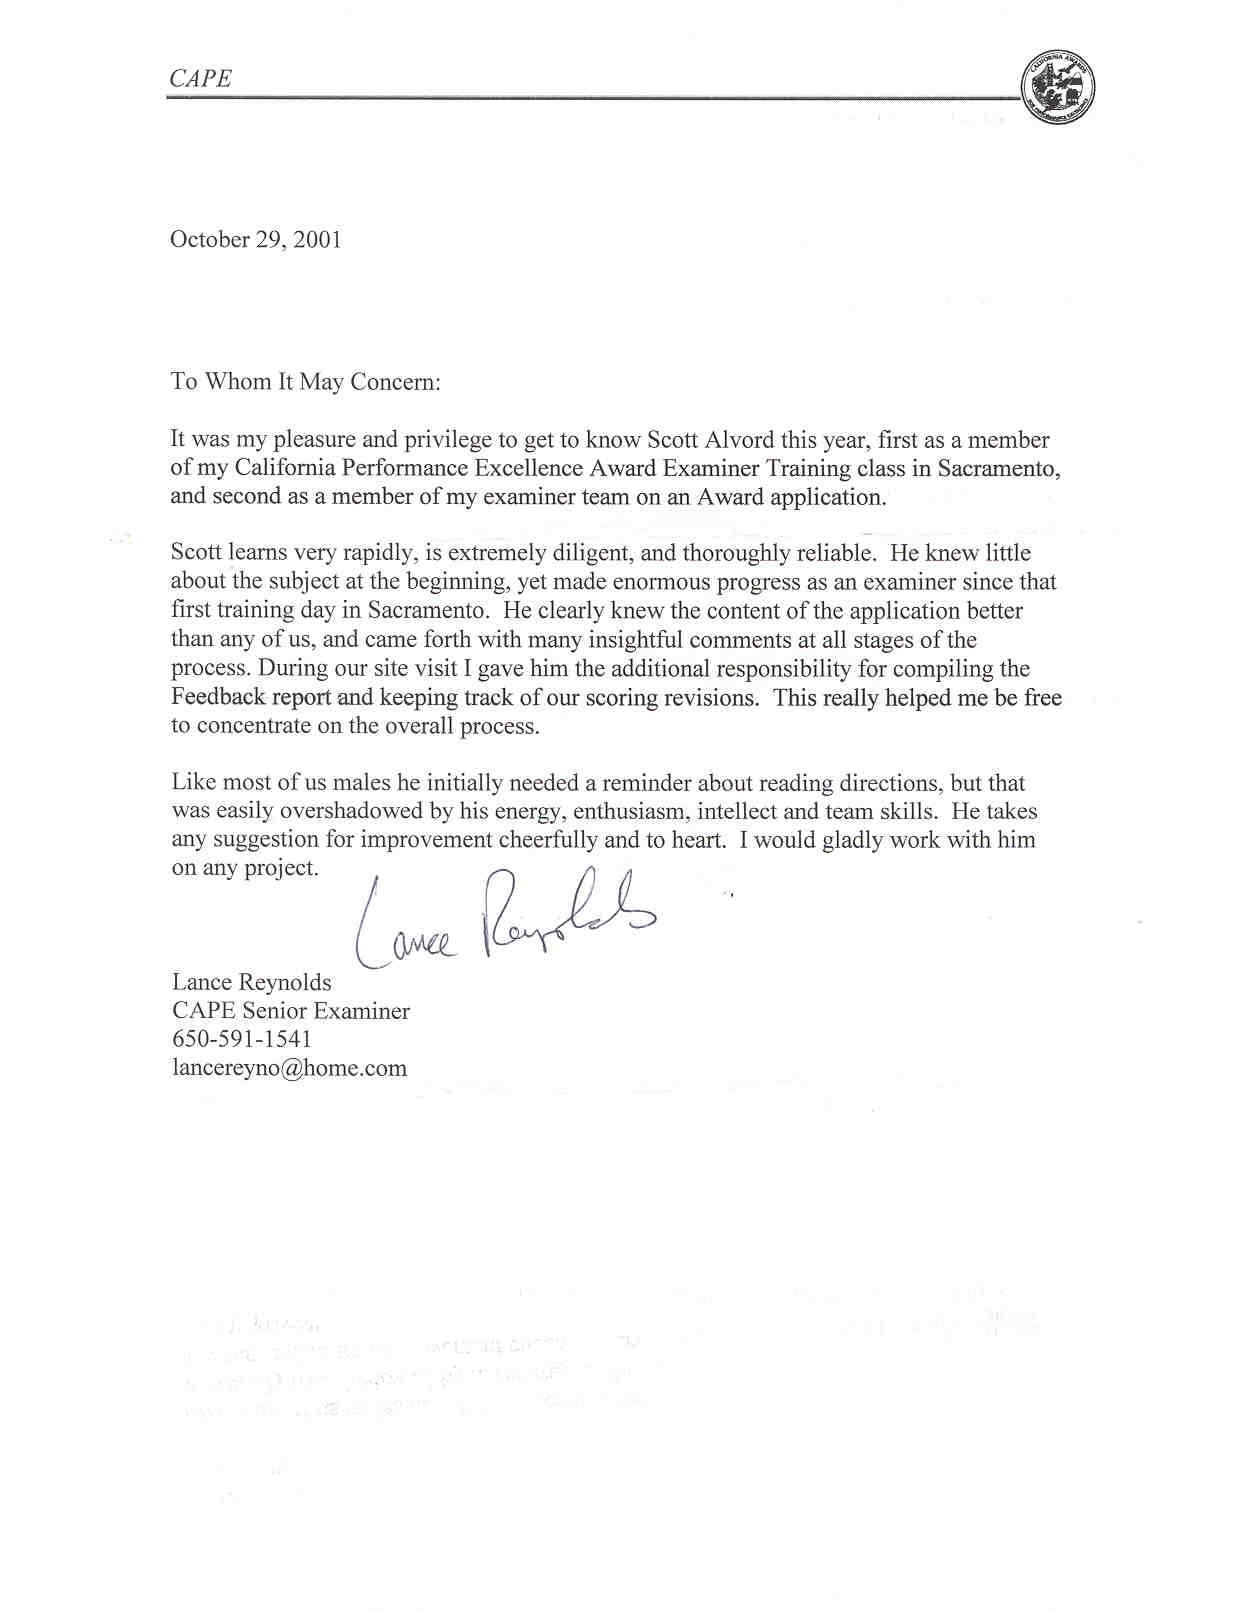 Immigration Letter Sample Nephew Recommendation | Recommendation Letter  Letter Of Recommendation Word